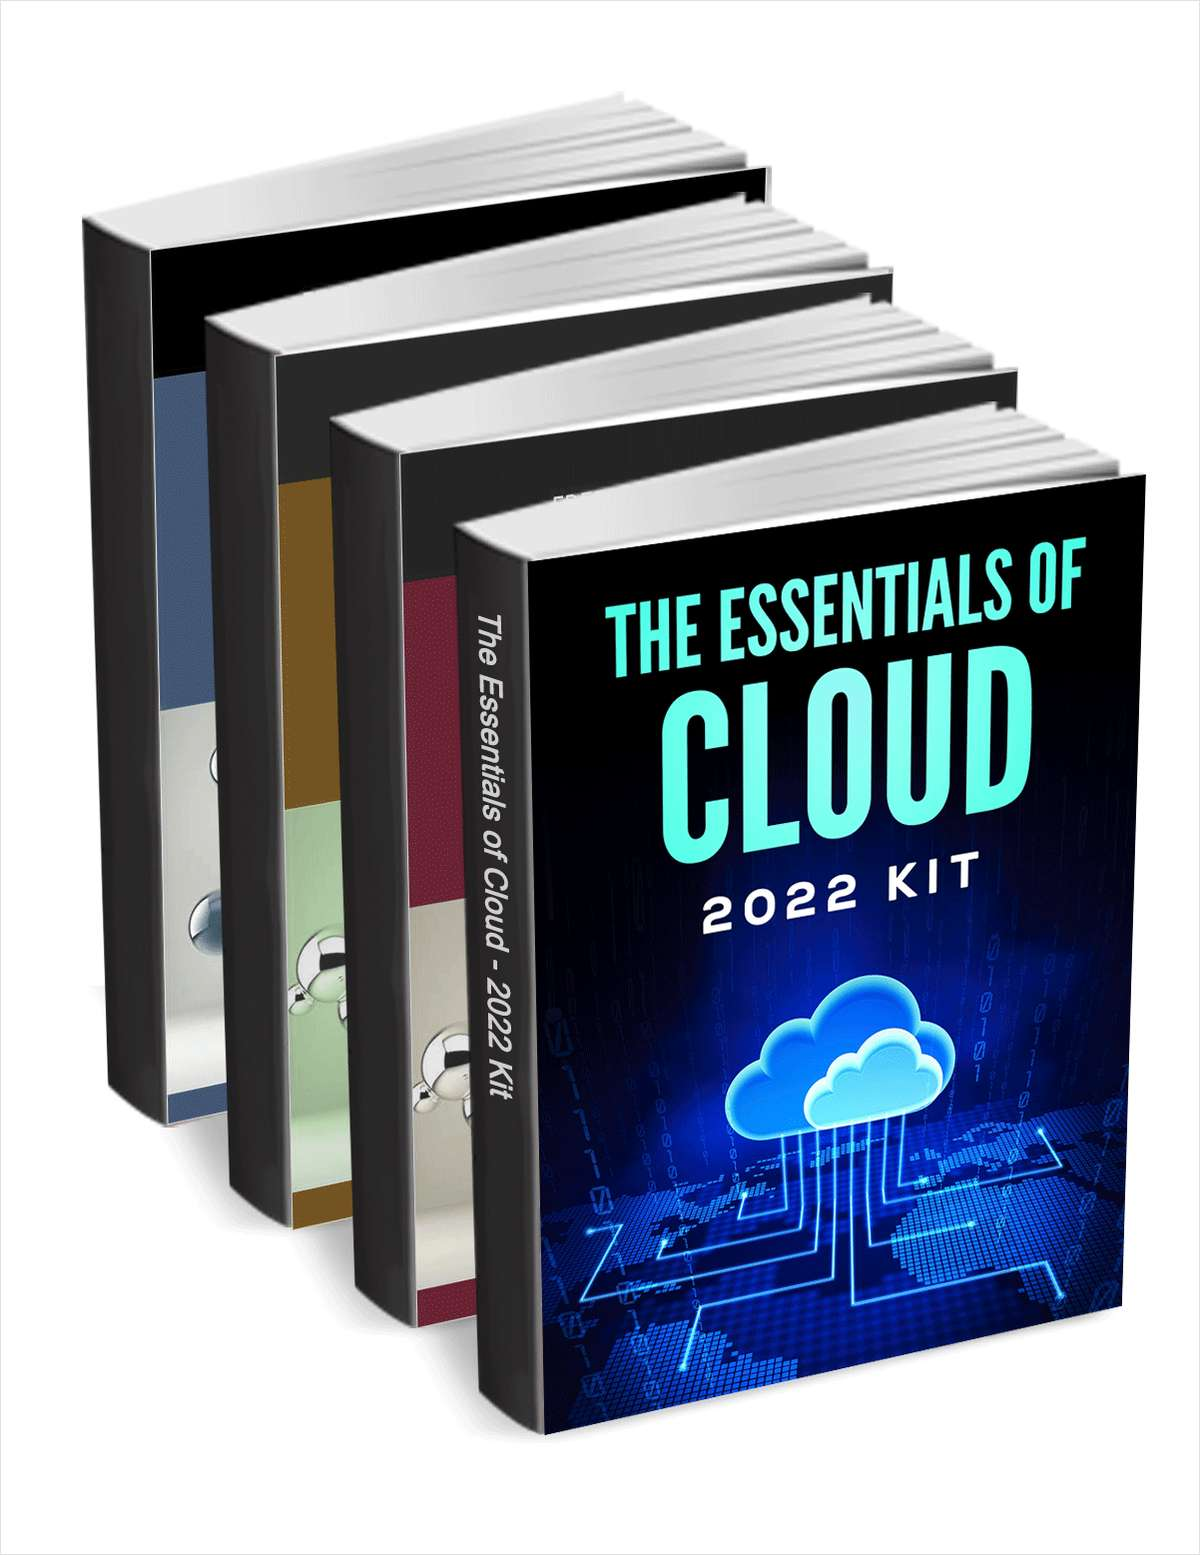 Trending Now: This Month's Top Cloud Resources